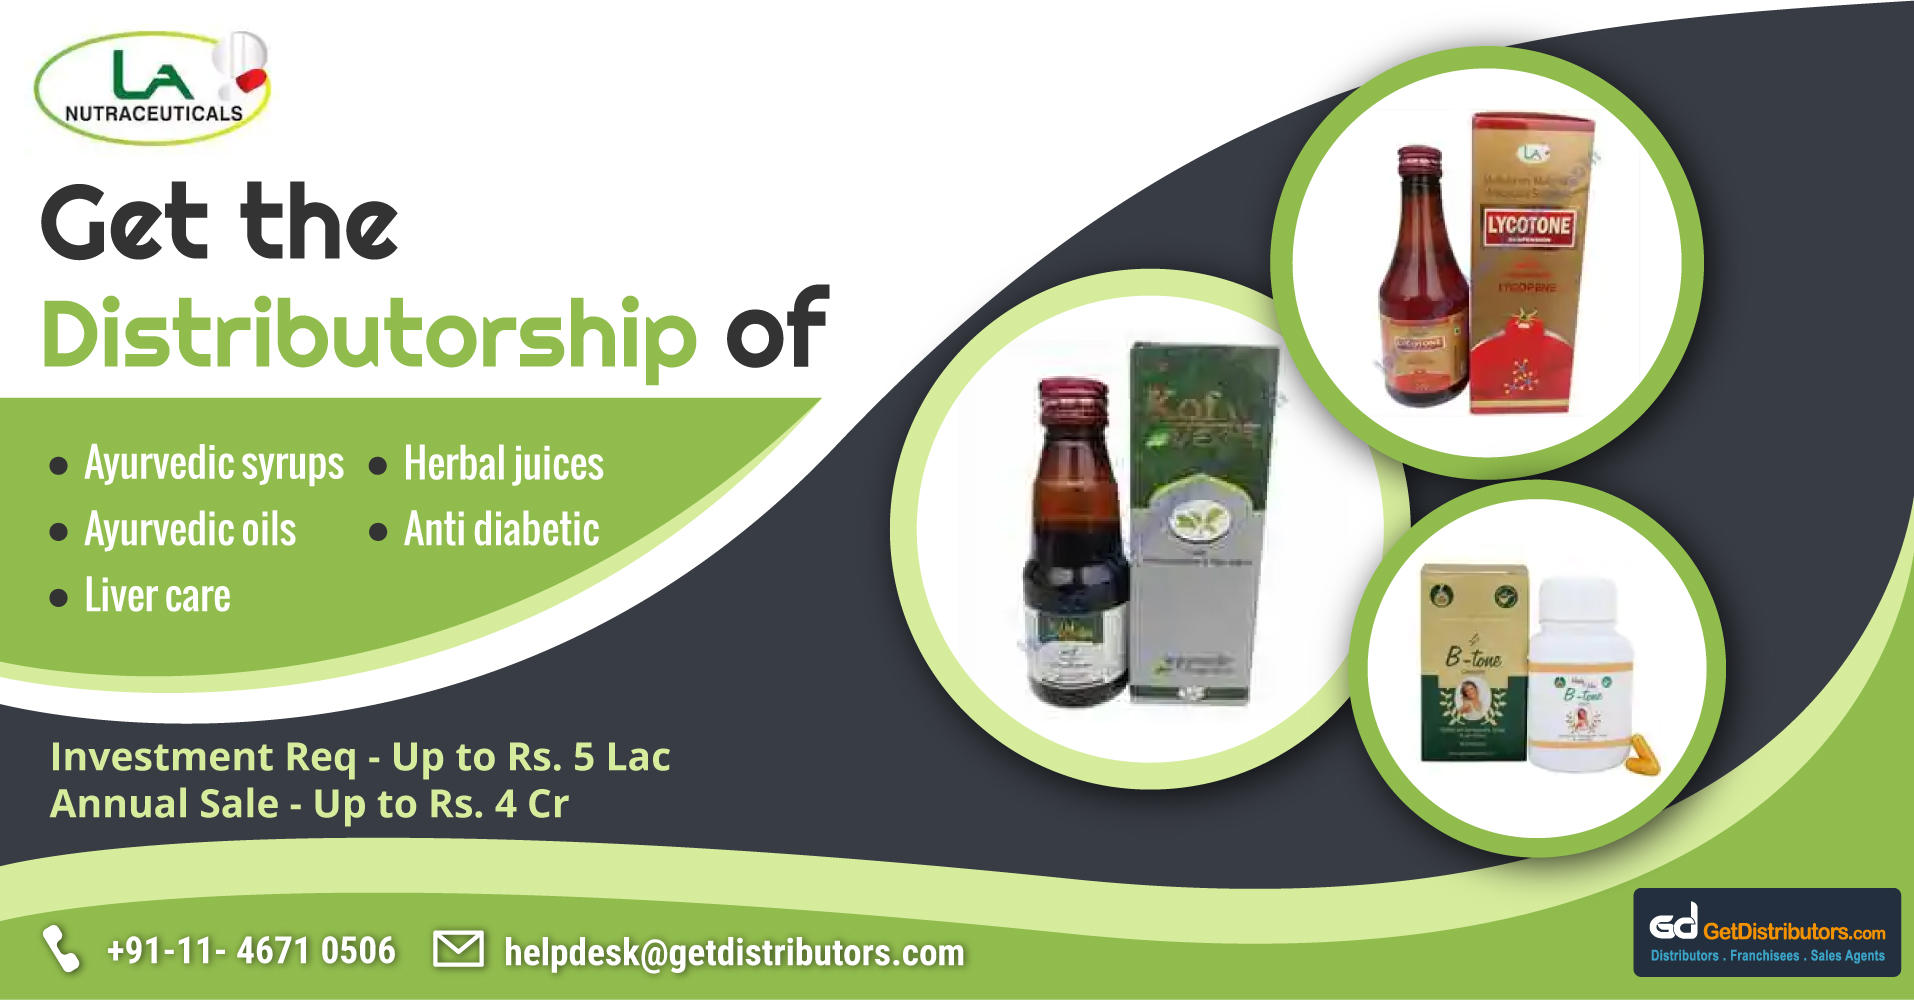 Herbal & Ayurvedic Products Distributorship At Affordable Prices